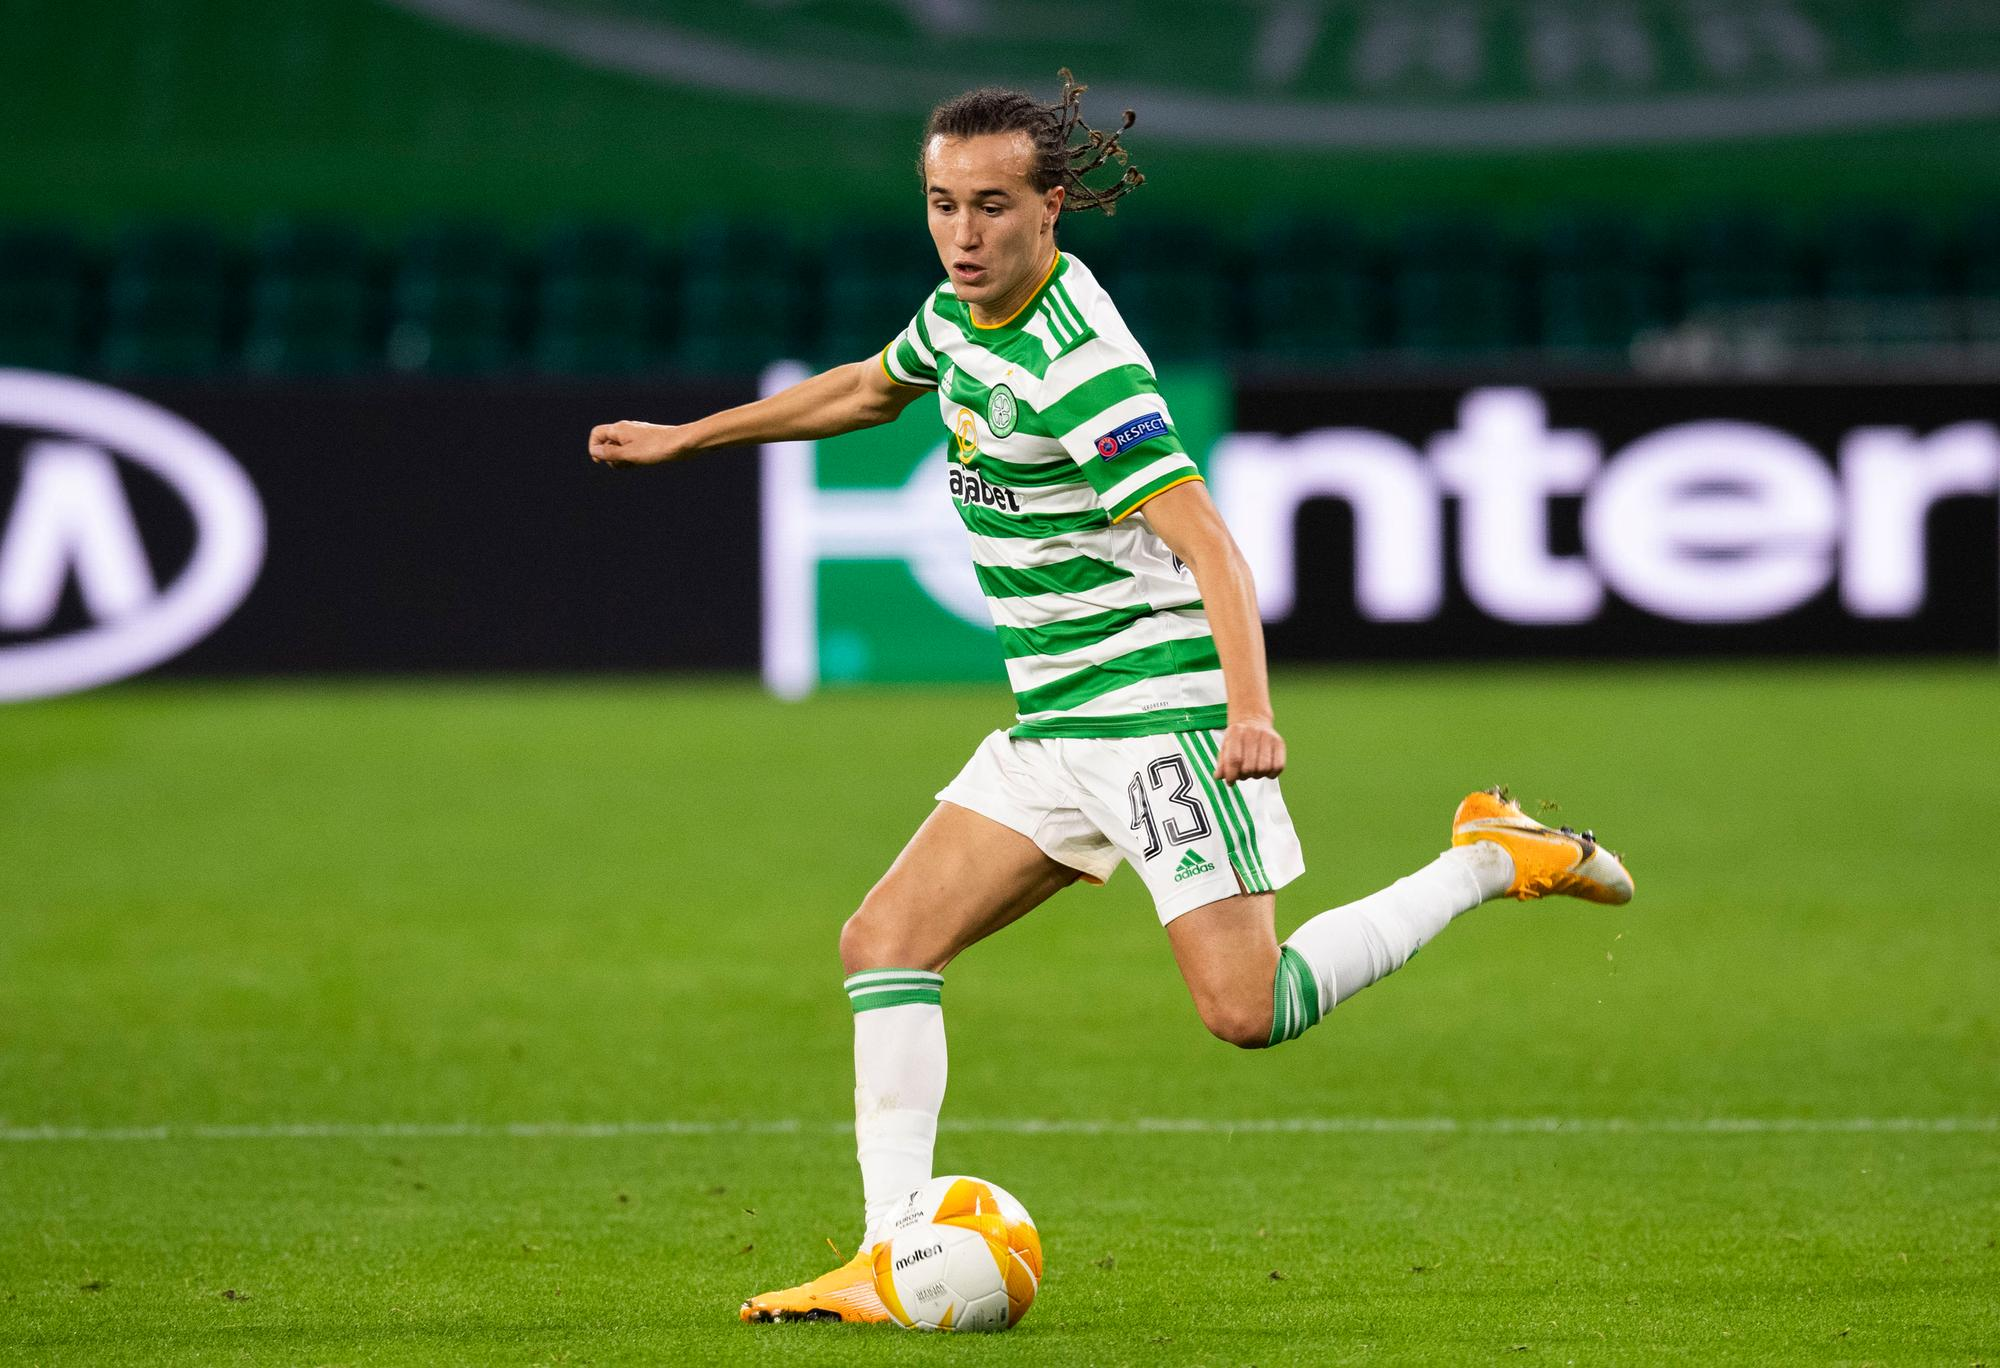 The 8 statistics behind Diego Laxalt's excellent performance for Celtic in  Lille | The Scotsman